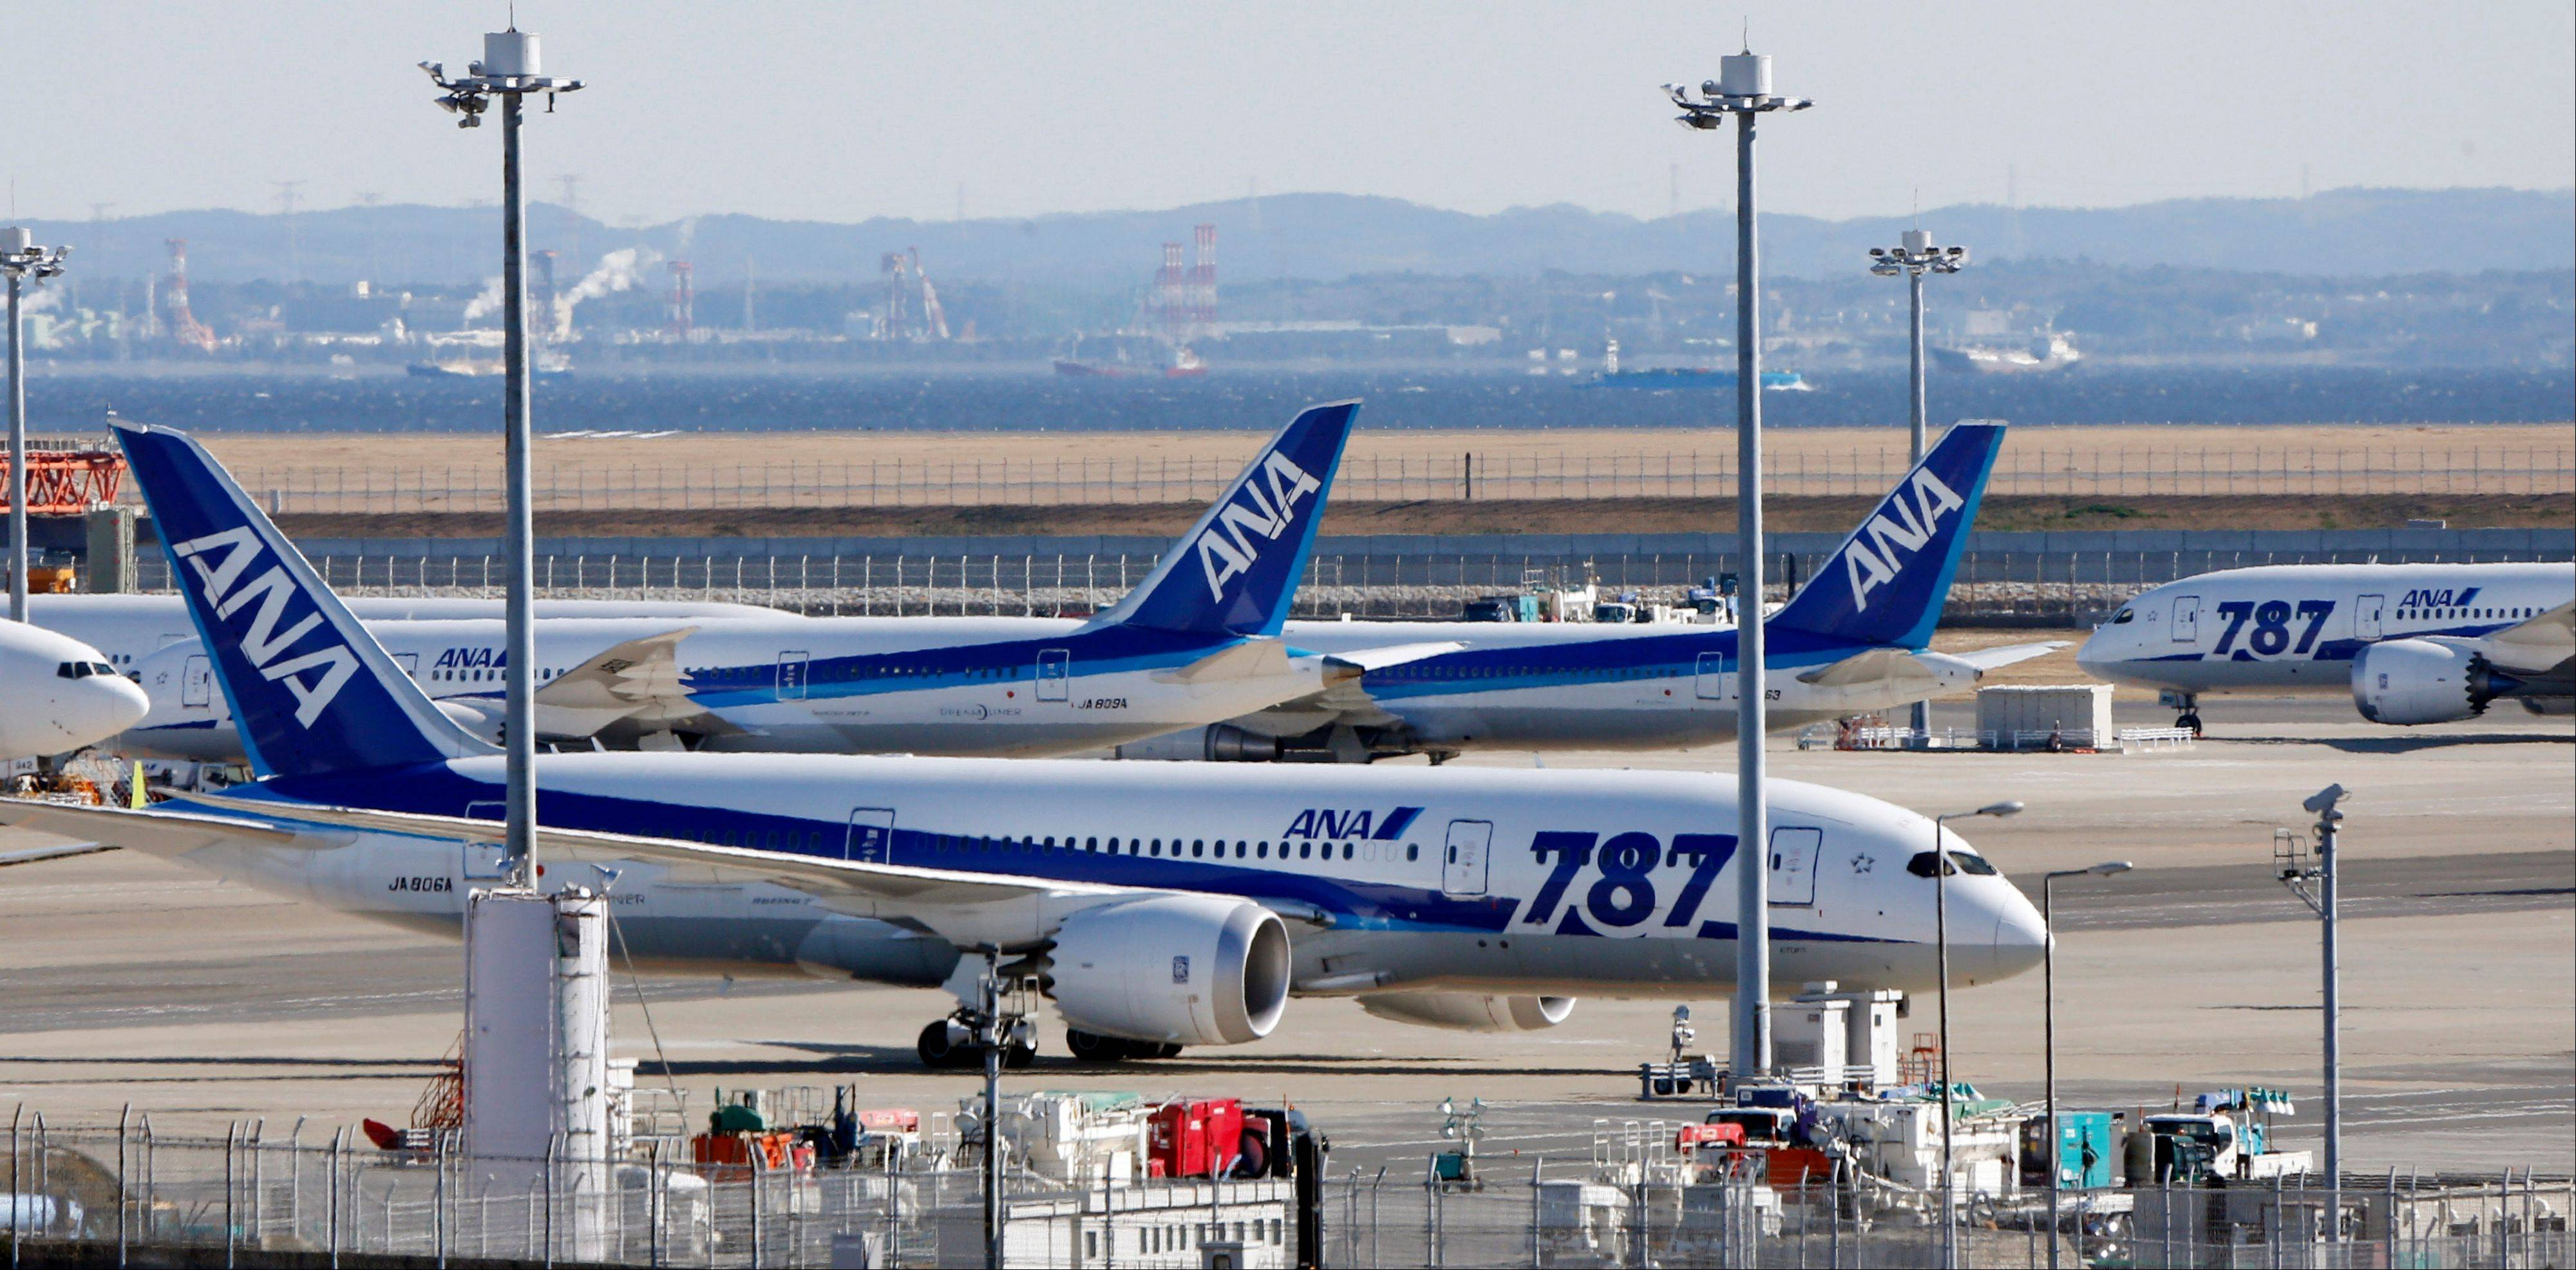 All Nippon Airways� Boeing 787 �the Dreamliner� passenger jets park on the tarmac at Haneda airport in Tokyo. Though Dreamliners remain grounded, Boeing is selling smaller jetliners.